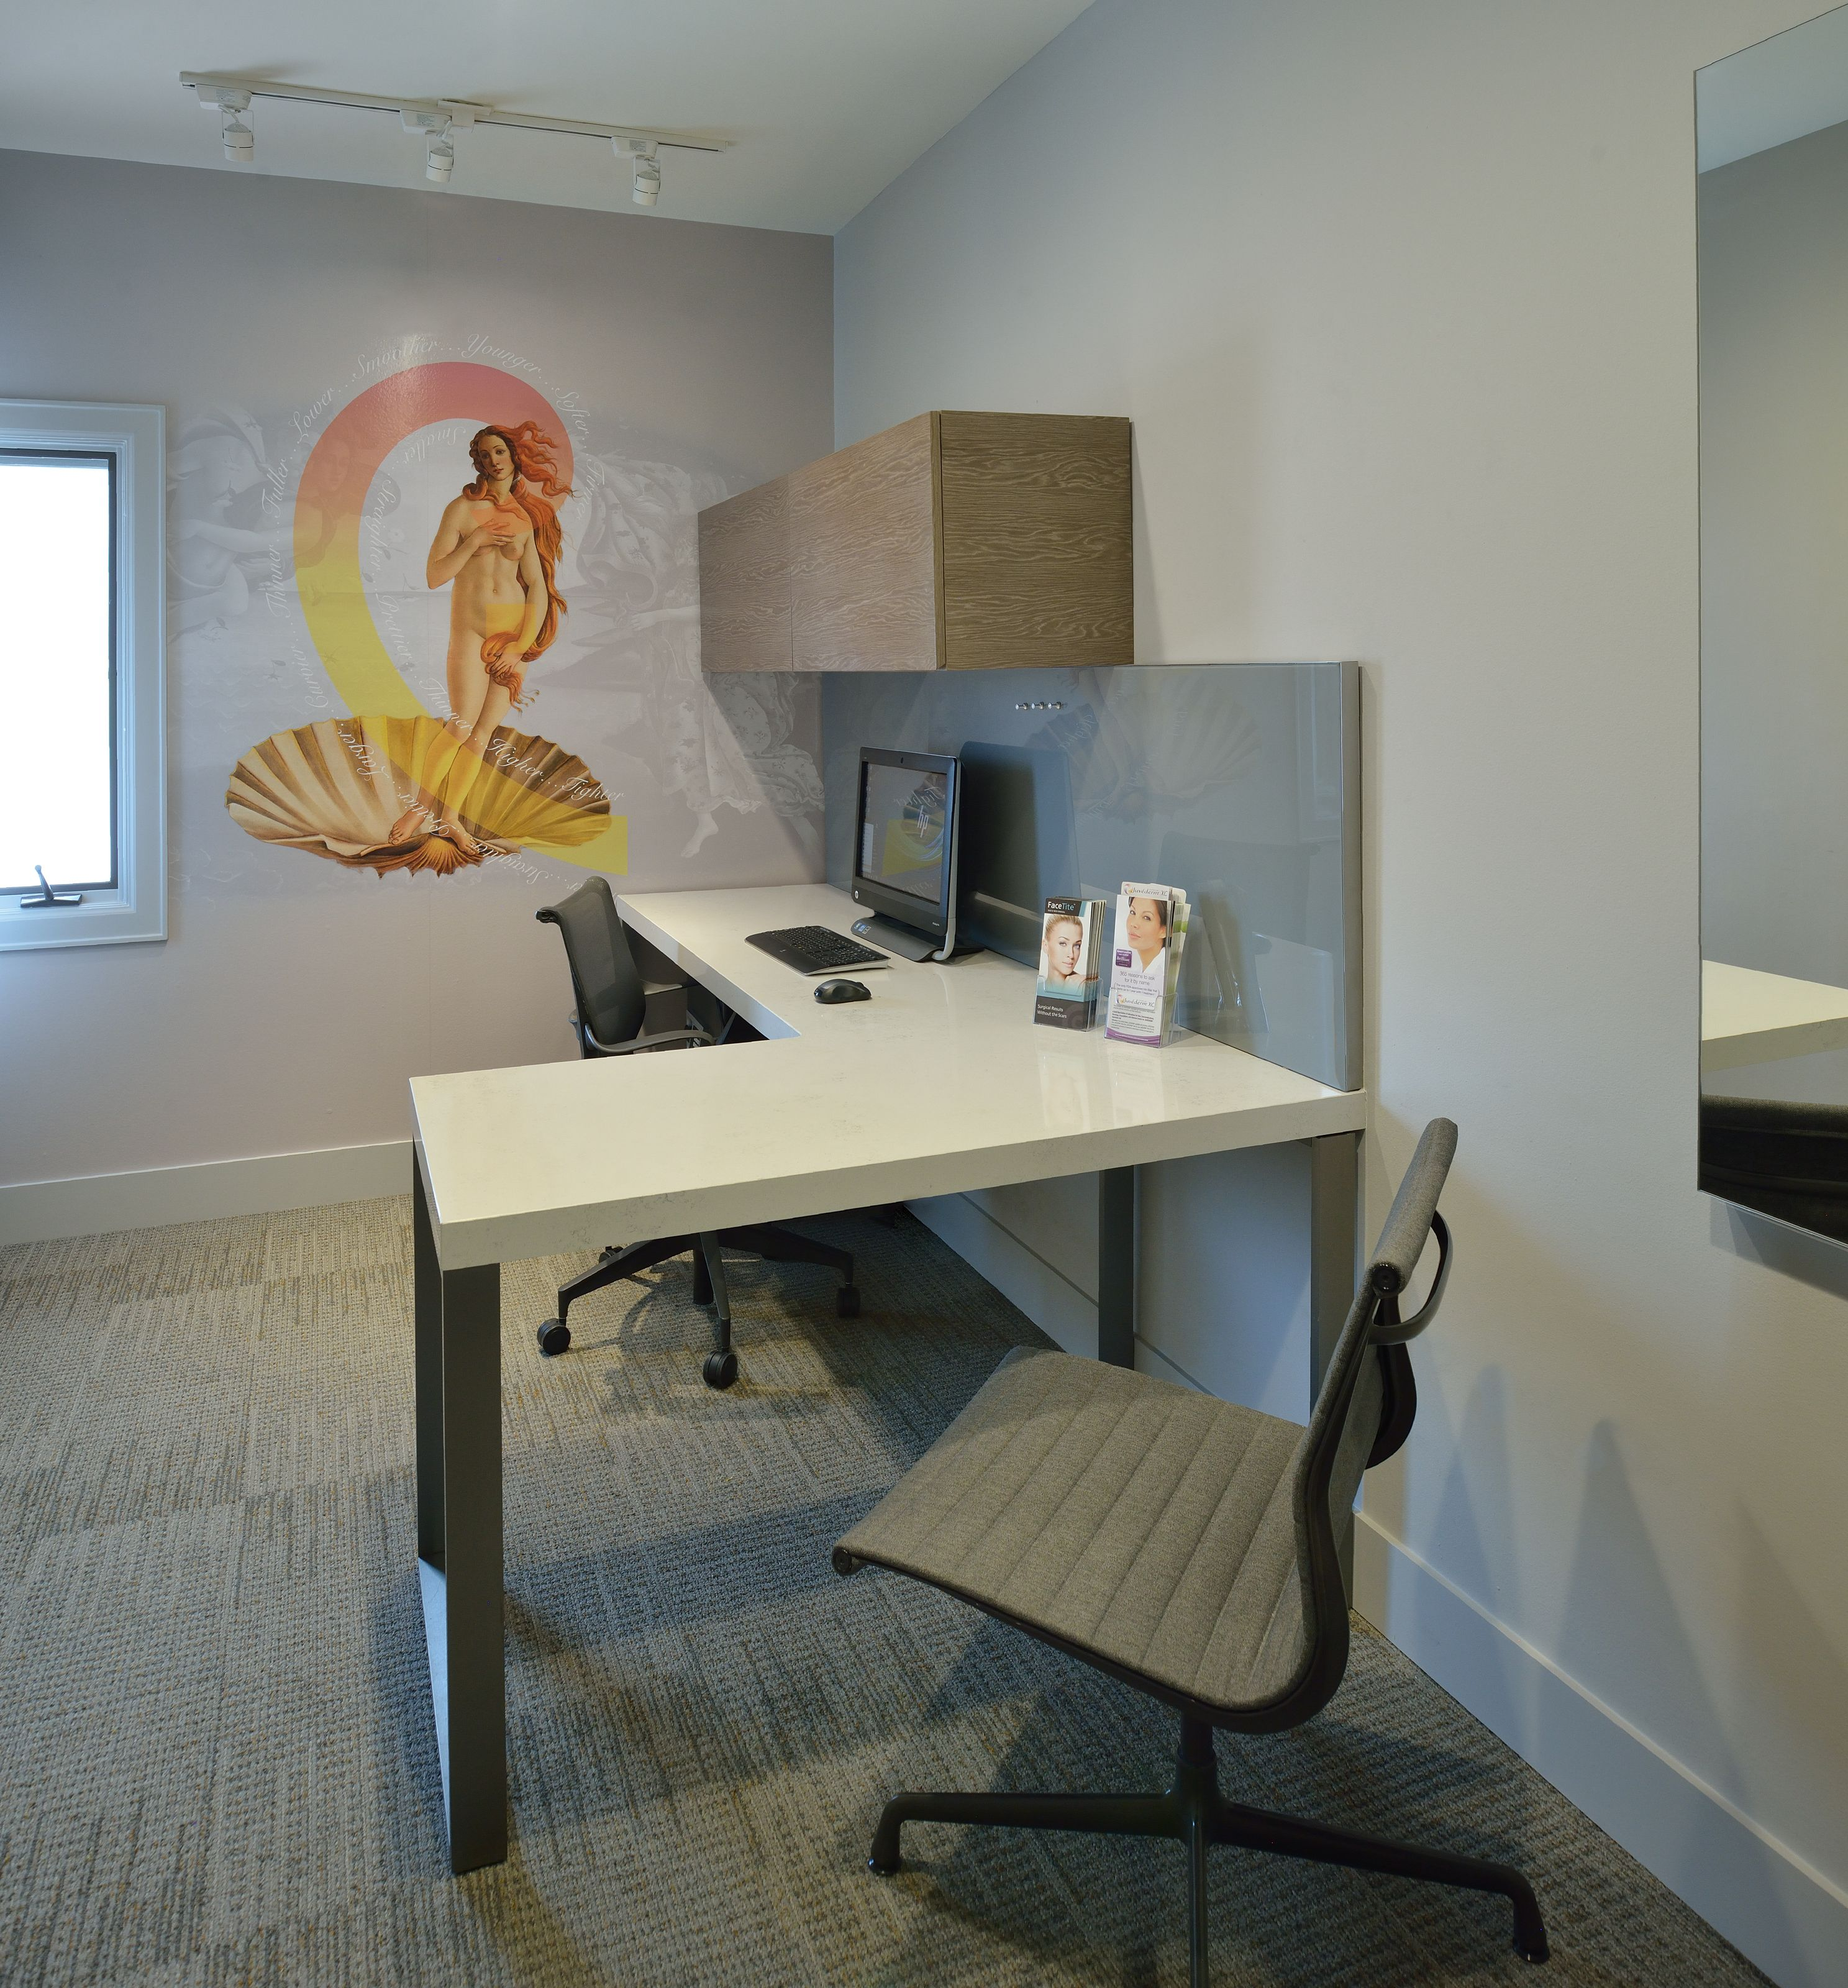 Consultation office of a plastic surgeon cosmetic office designed by wendt design group llc www